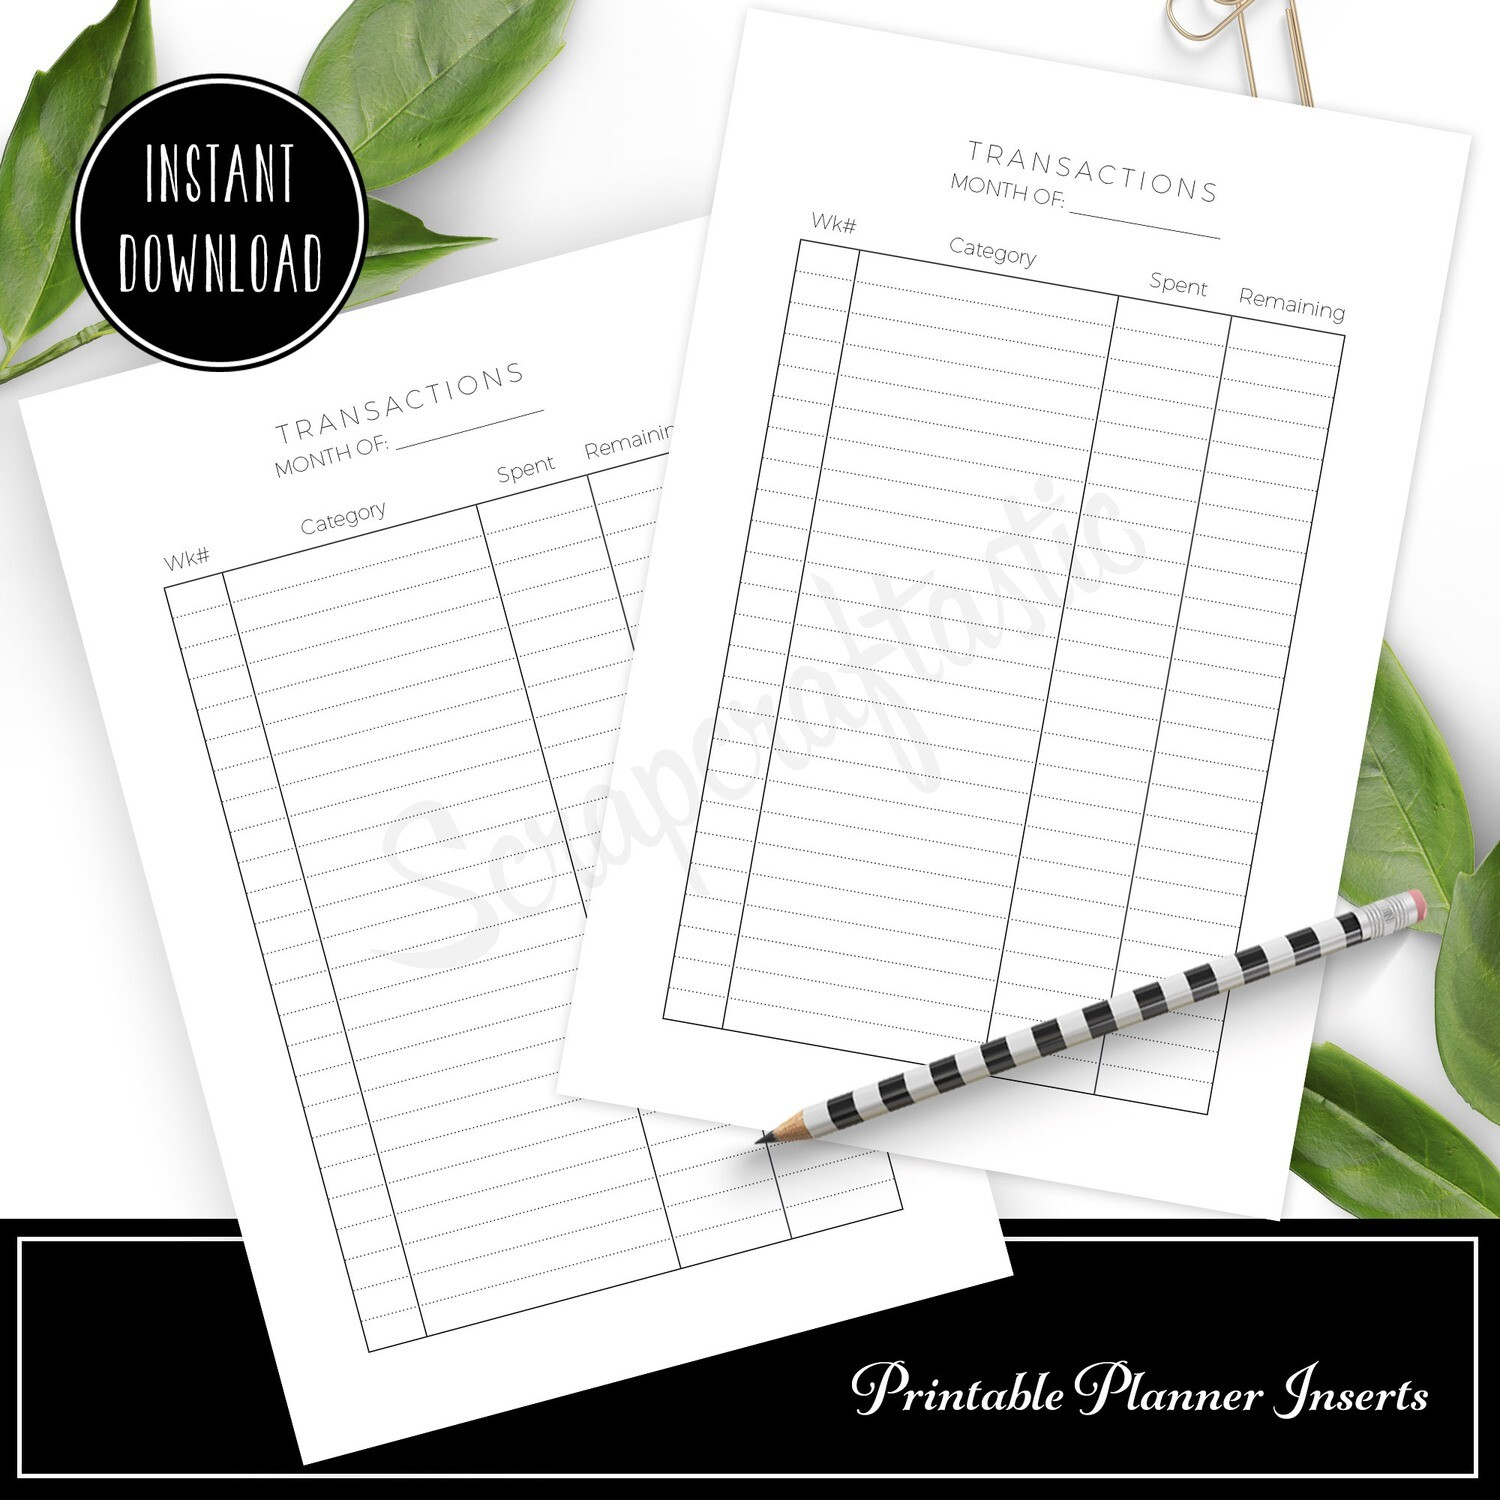 LETTER - Transactions Budget Printable Planner Inserts